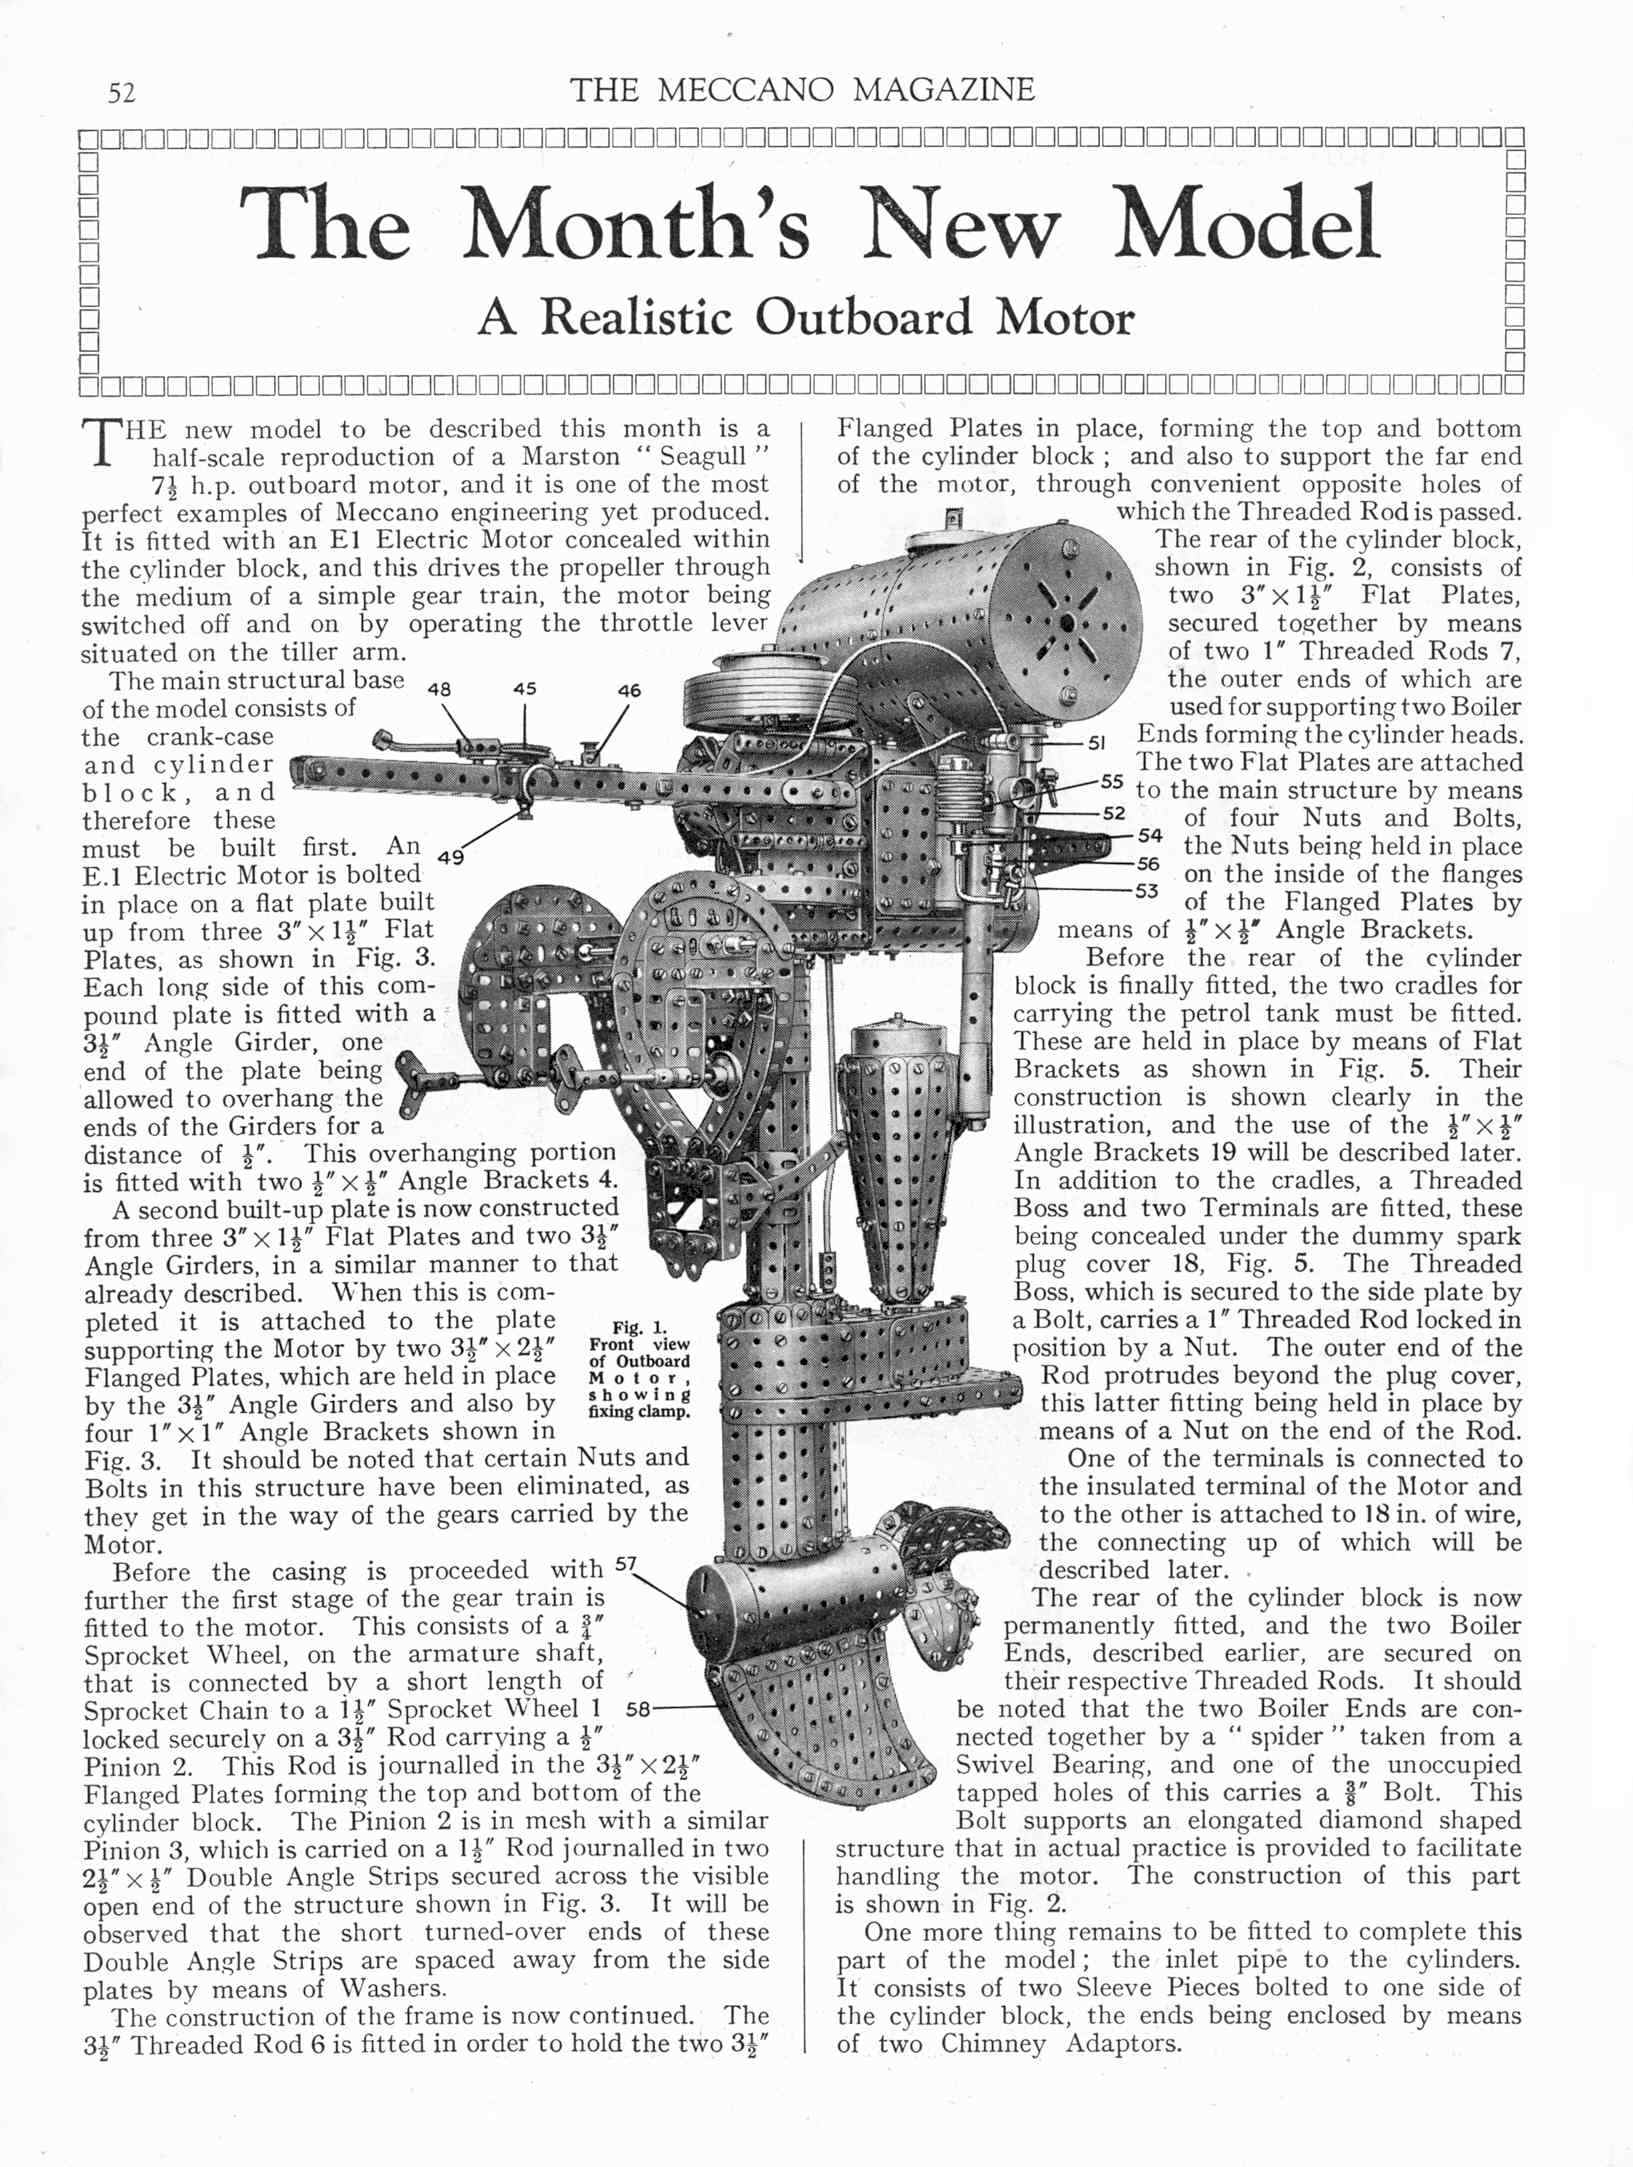 meccano outboard motor 1934 plan from MM